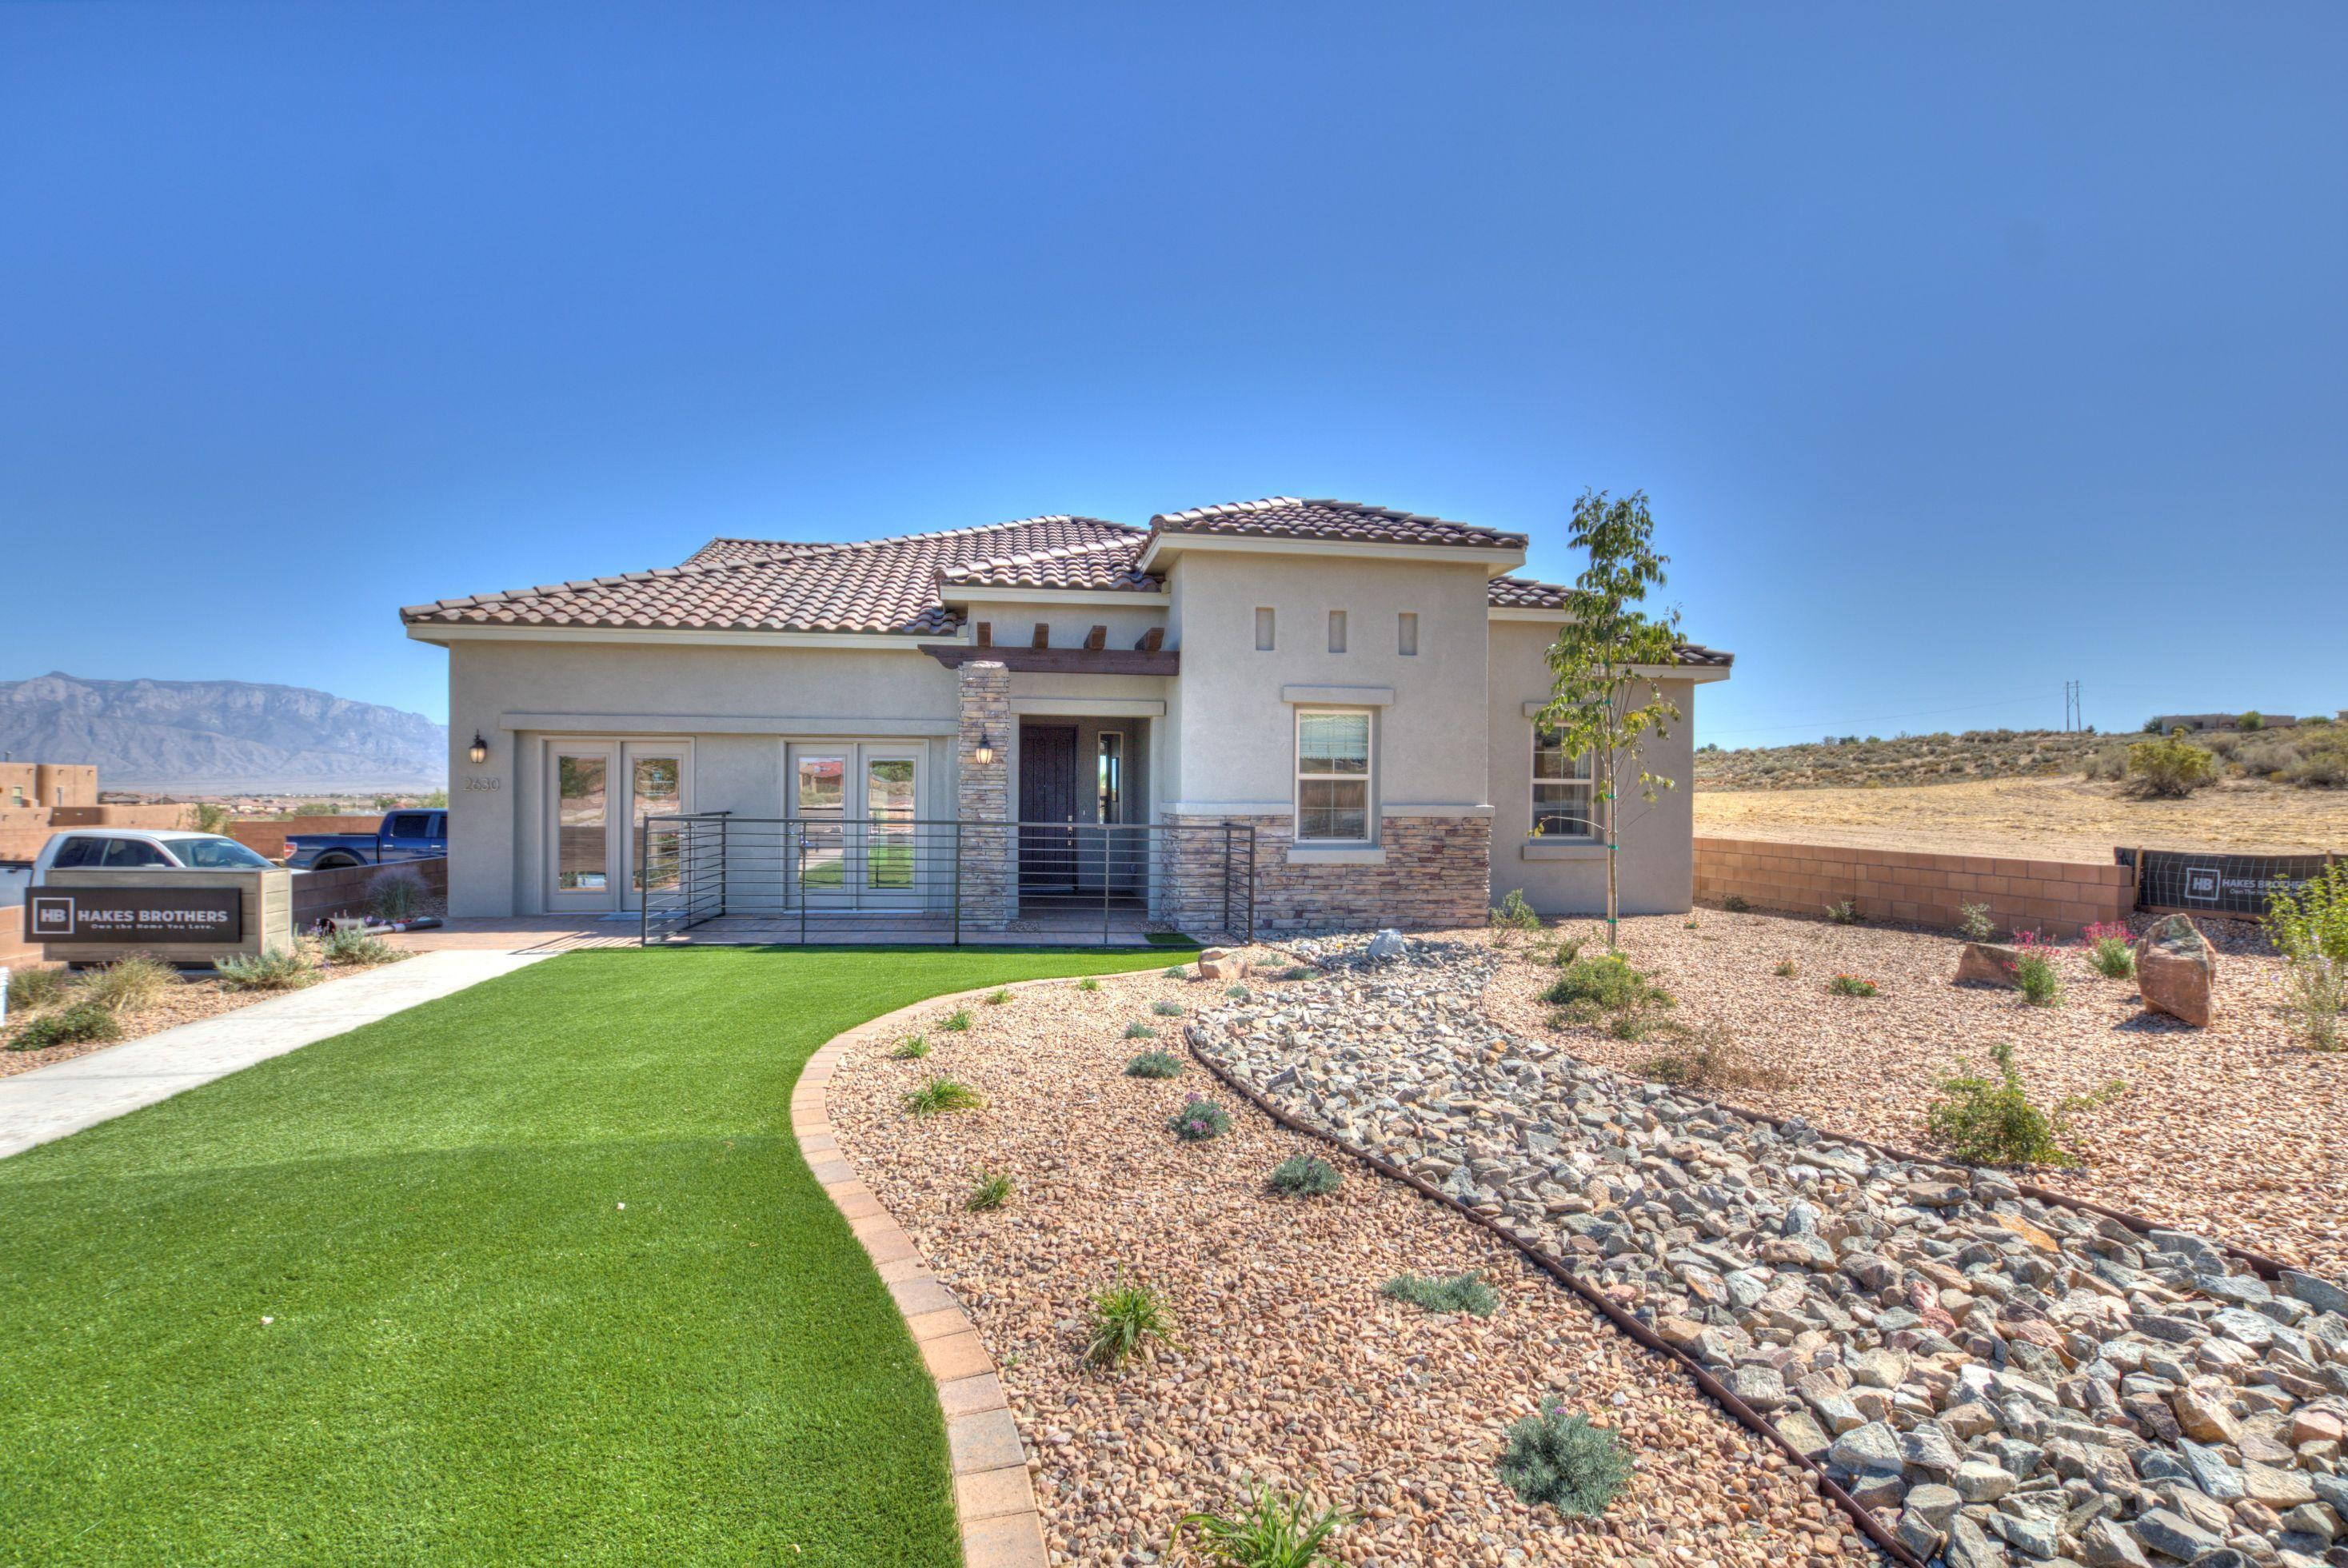 Hakes Brother Brand New Model Home 2740 TuscanInvestor special!  Leaseback program!  Beautiful decked out model with gourmet kitchen, 36'' tiled fireplace, barn door, Master shower with rain shower head, 8' doors throughout, pot filler, farm sink, upgraded tile!NO PID NO HOA